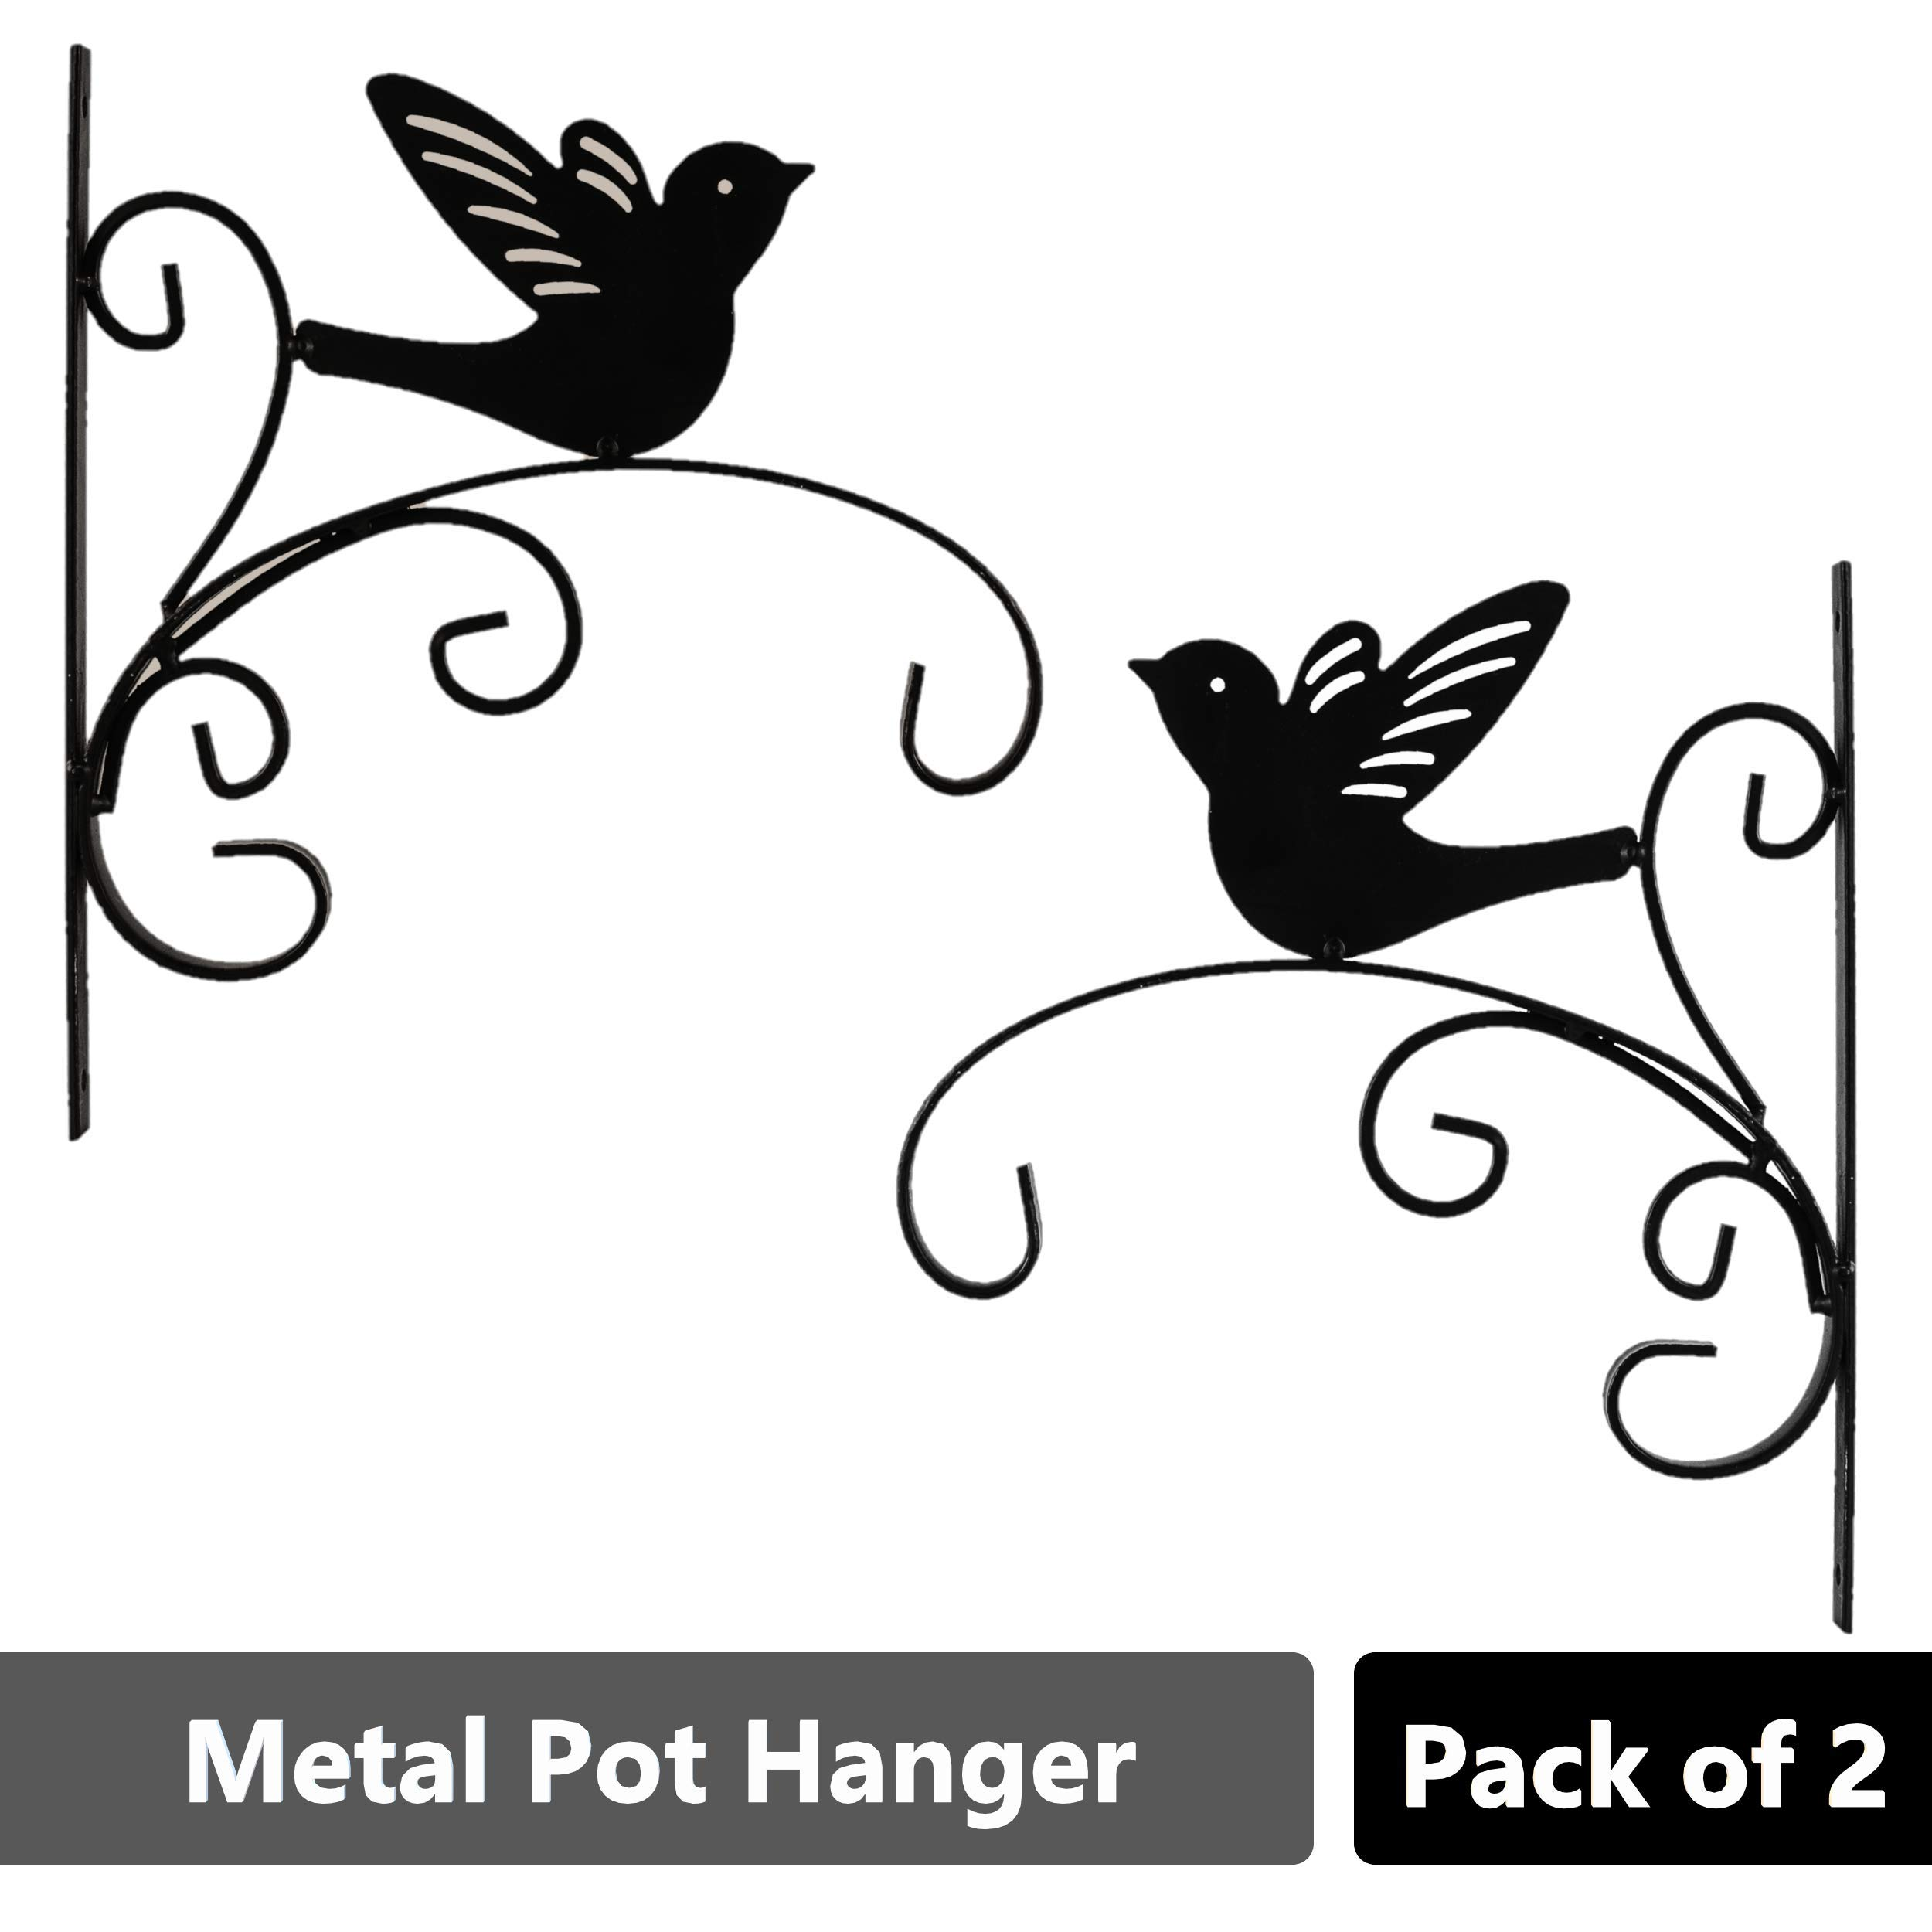 Sharpex Wall Bracket Hanger for Garden Pots, Hanging Flower Pots, Flower Shape Bird Shape Bracket Hanger - Black (Set of 2) product image